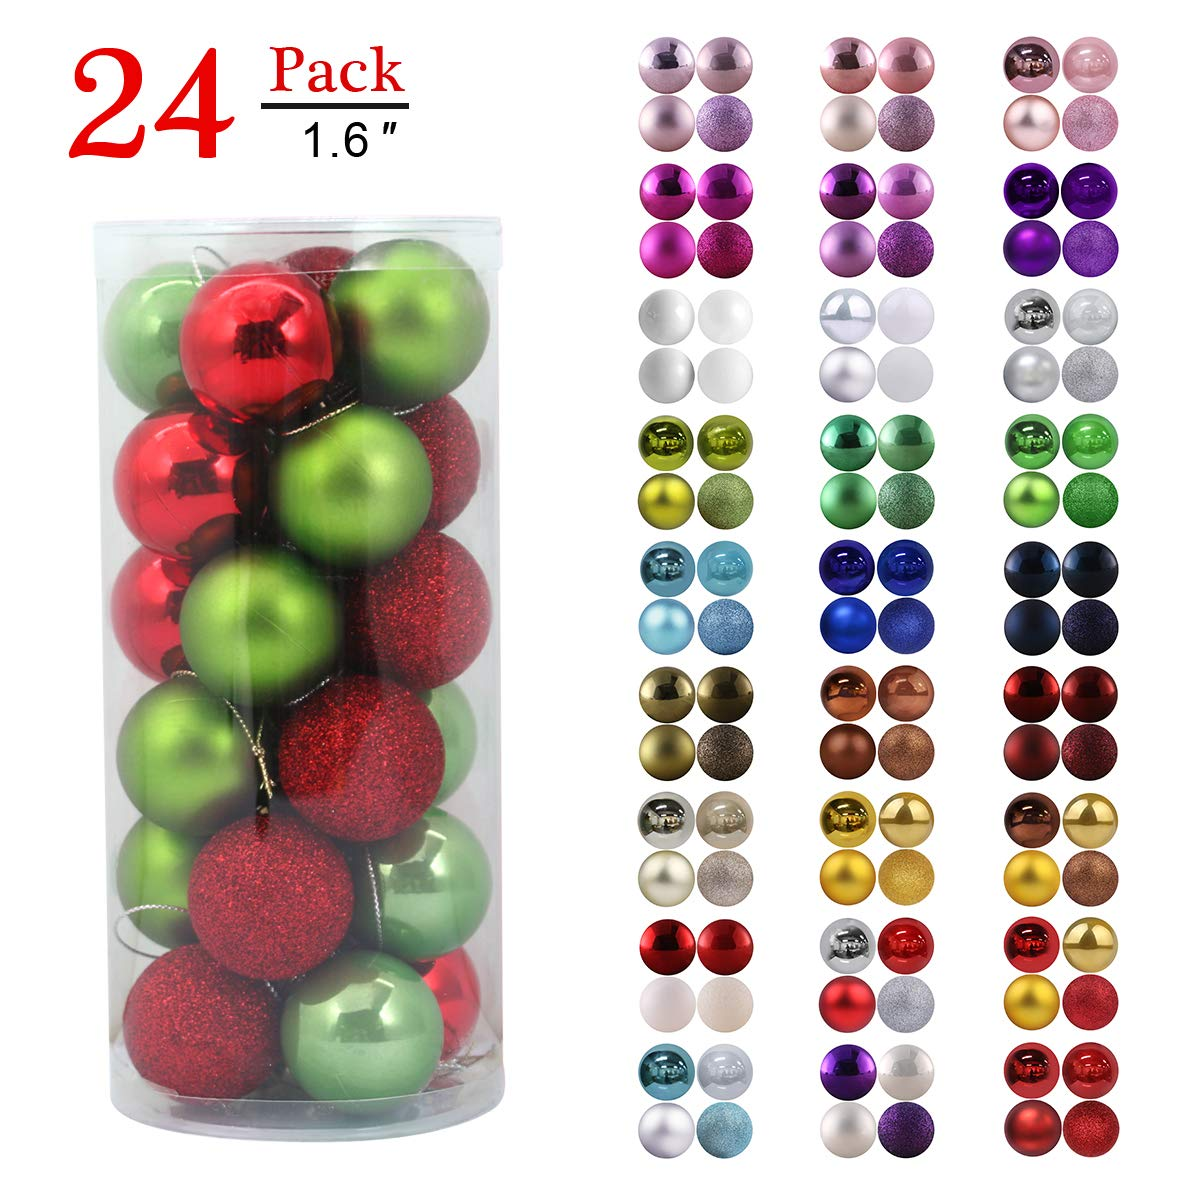 "Christmas Balls Ornaments for Xmas Tree - Shatterproof Christmas Tree Decorations Perfect Hanging Ball Red & Green 1.6"" x 24 Pack"